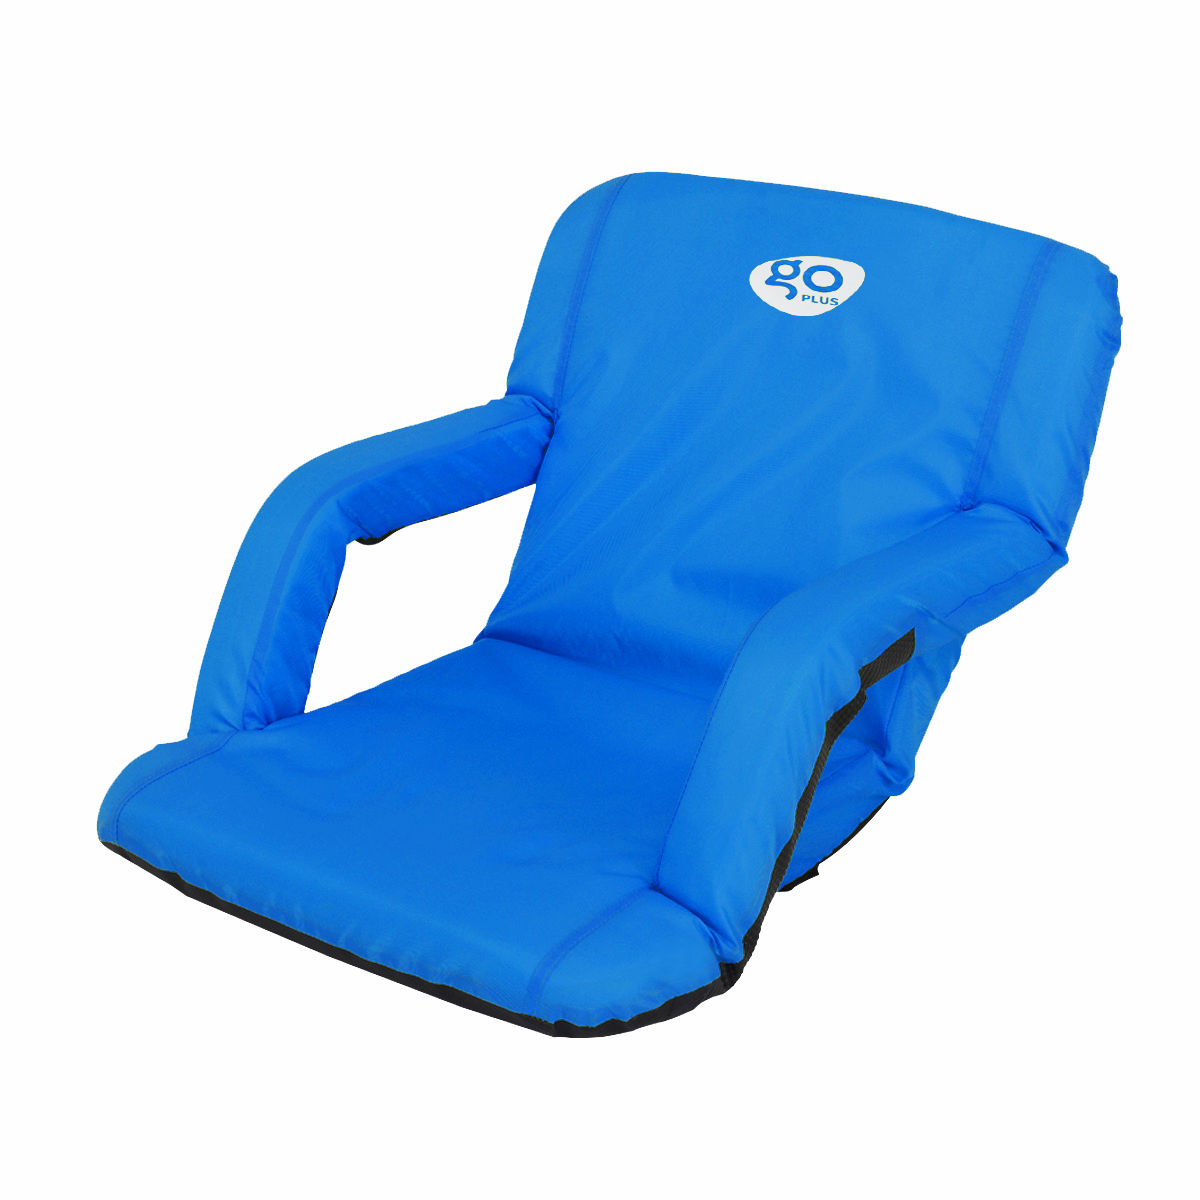 Reclining Seat Padded Cushion Camping Sport Chair-Blue